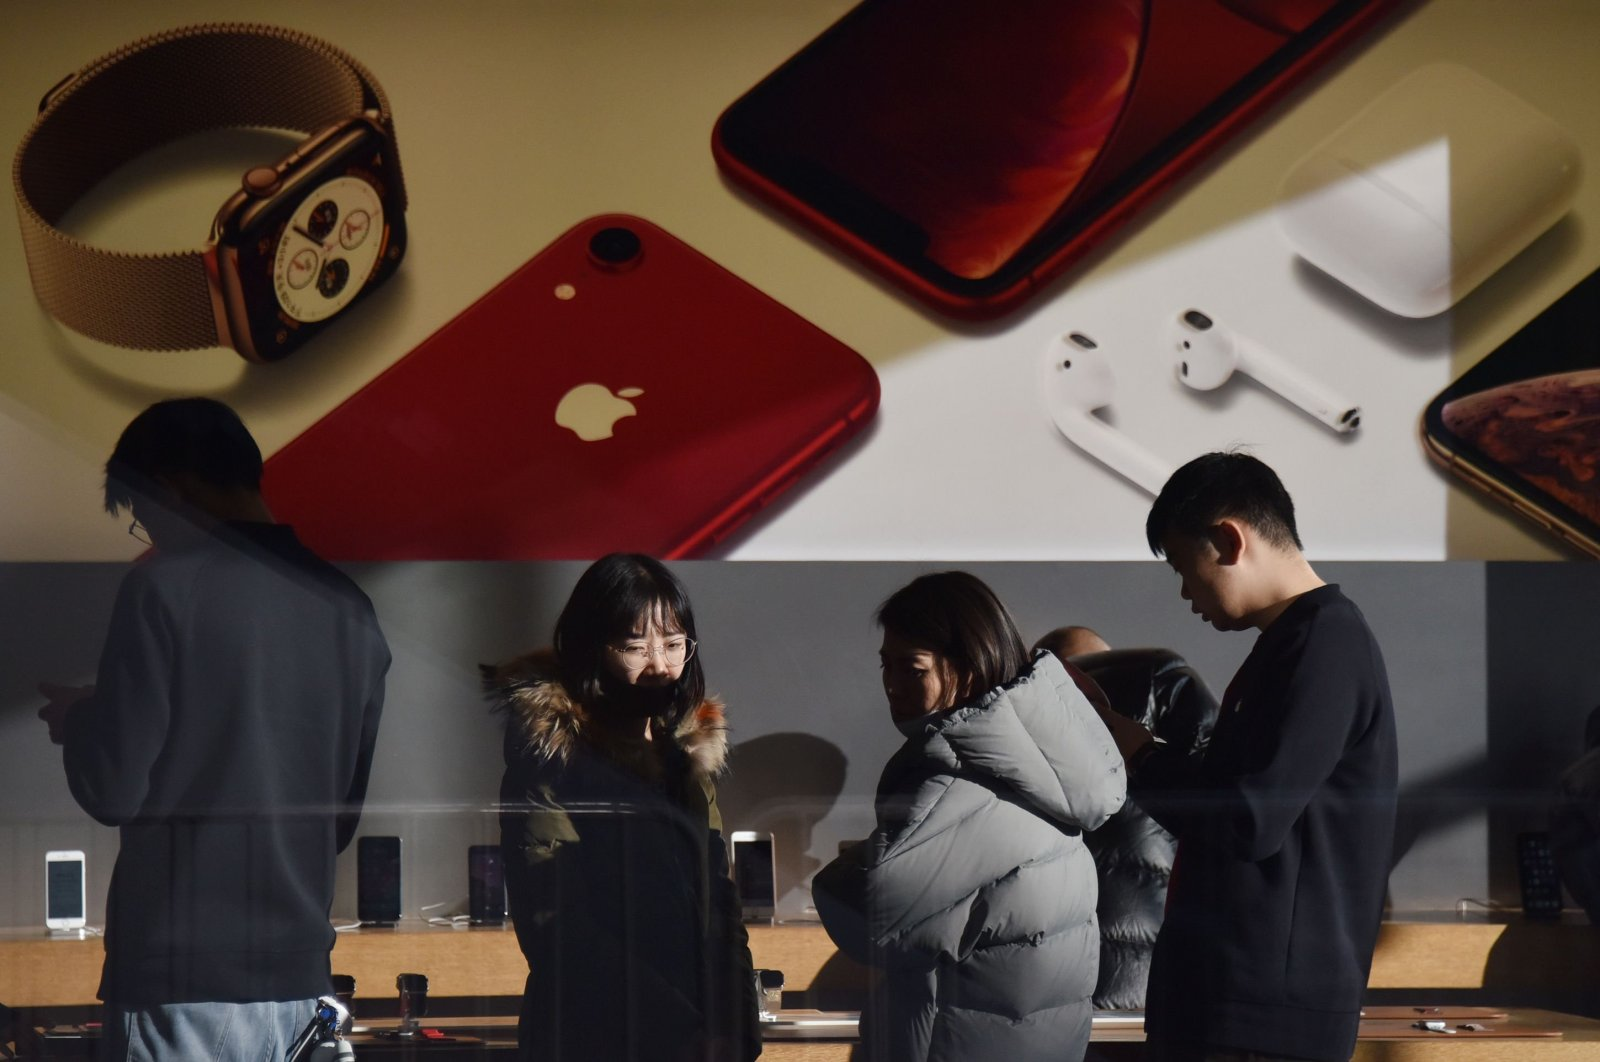 Customers look at products in an Apple store in Beijing, China, Dec. 11, 2018. (AFP Photo)